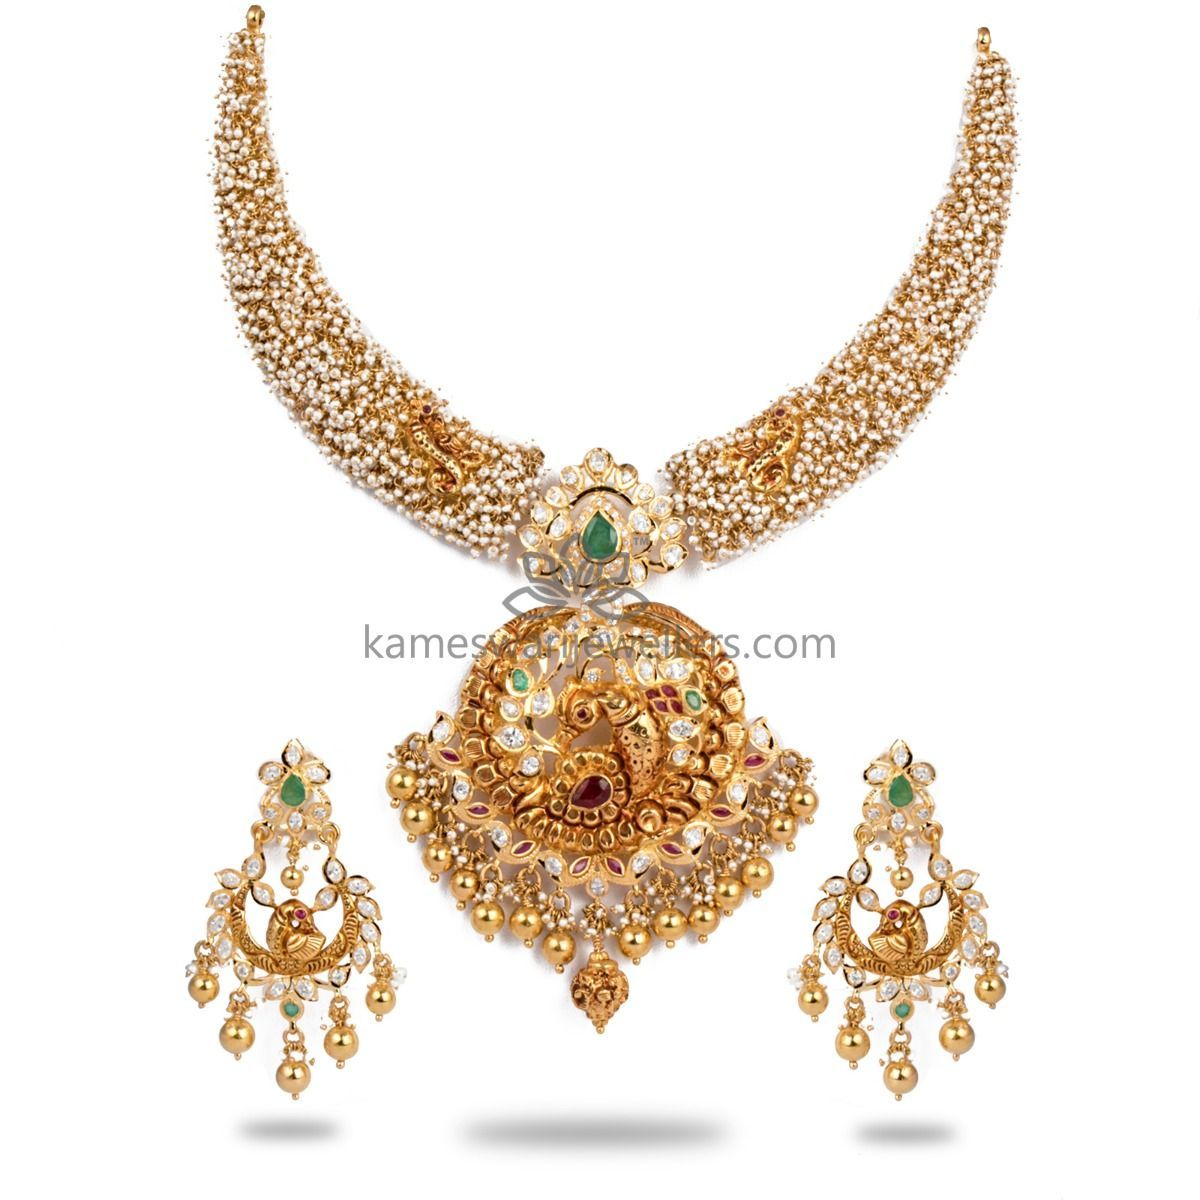 Buy Necklaces Online Grand Micropearl Kanti From Kameswari Jewellers We Ship Across India And U Buy Necklace Beautiful Gold Necklaces Big Stud Earrings